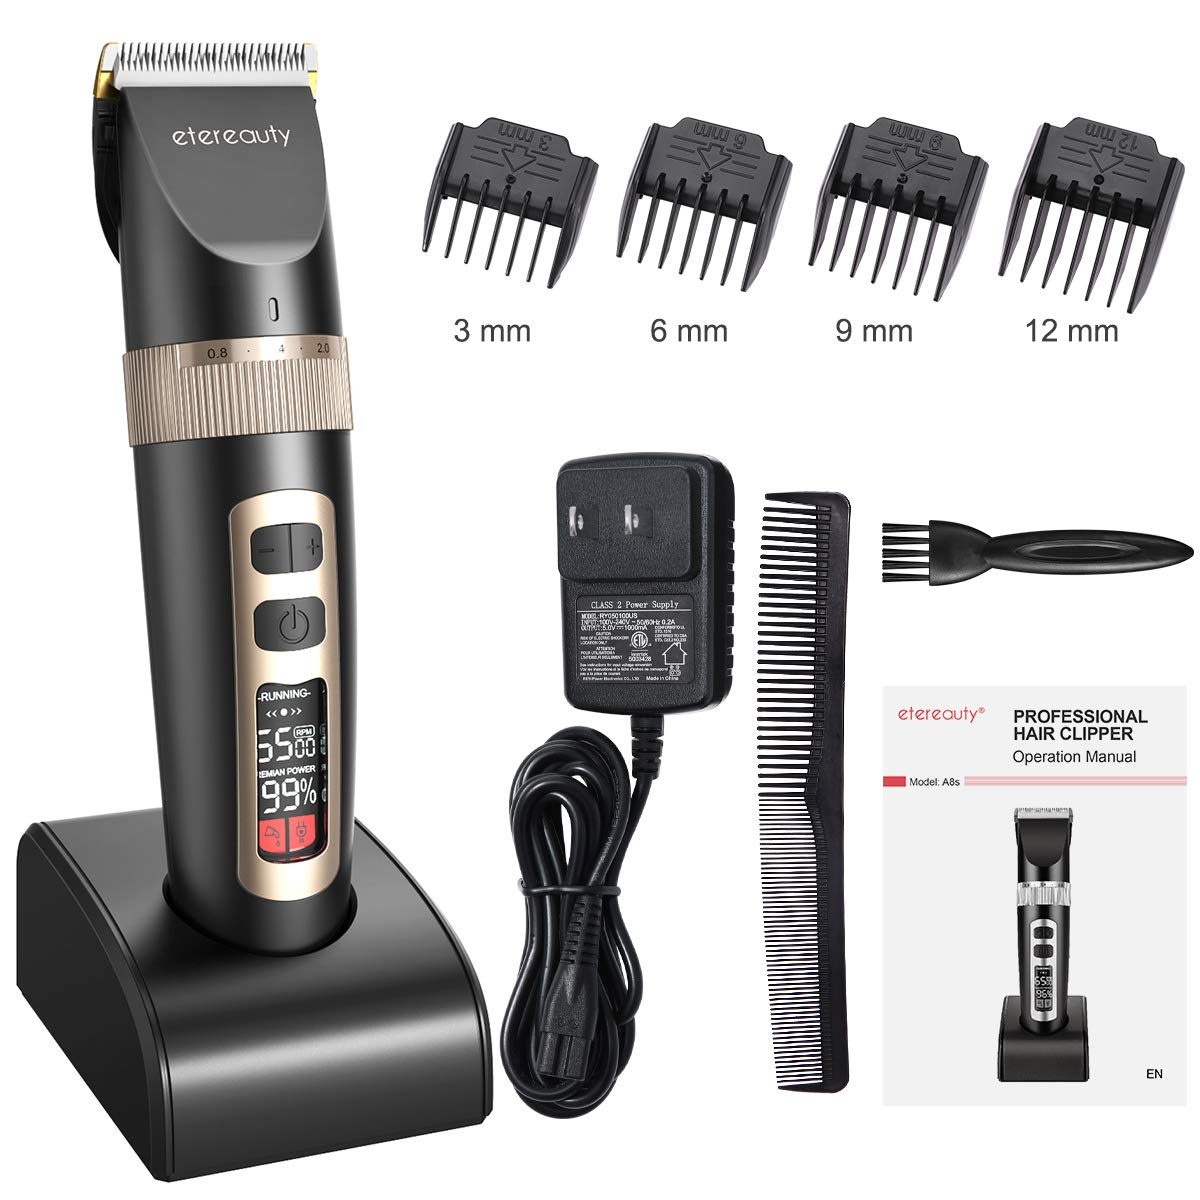 Hair Clippers for Men,Professional Cordless Hair Clippers Ultra Quiet Rechargeable Hair Trimmer with Self-Sharpening Ceramic Blade & LCD Display